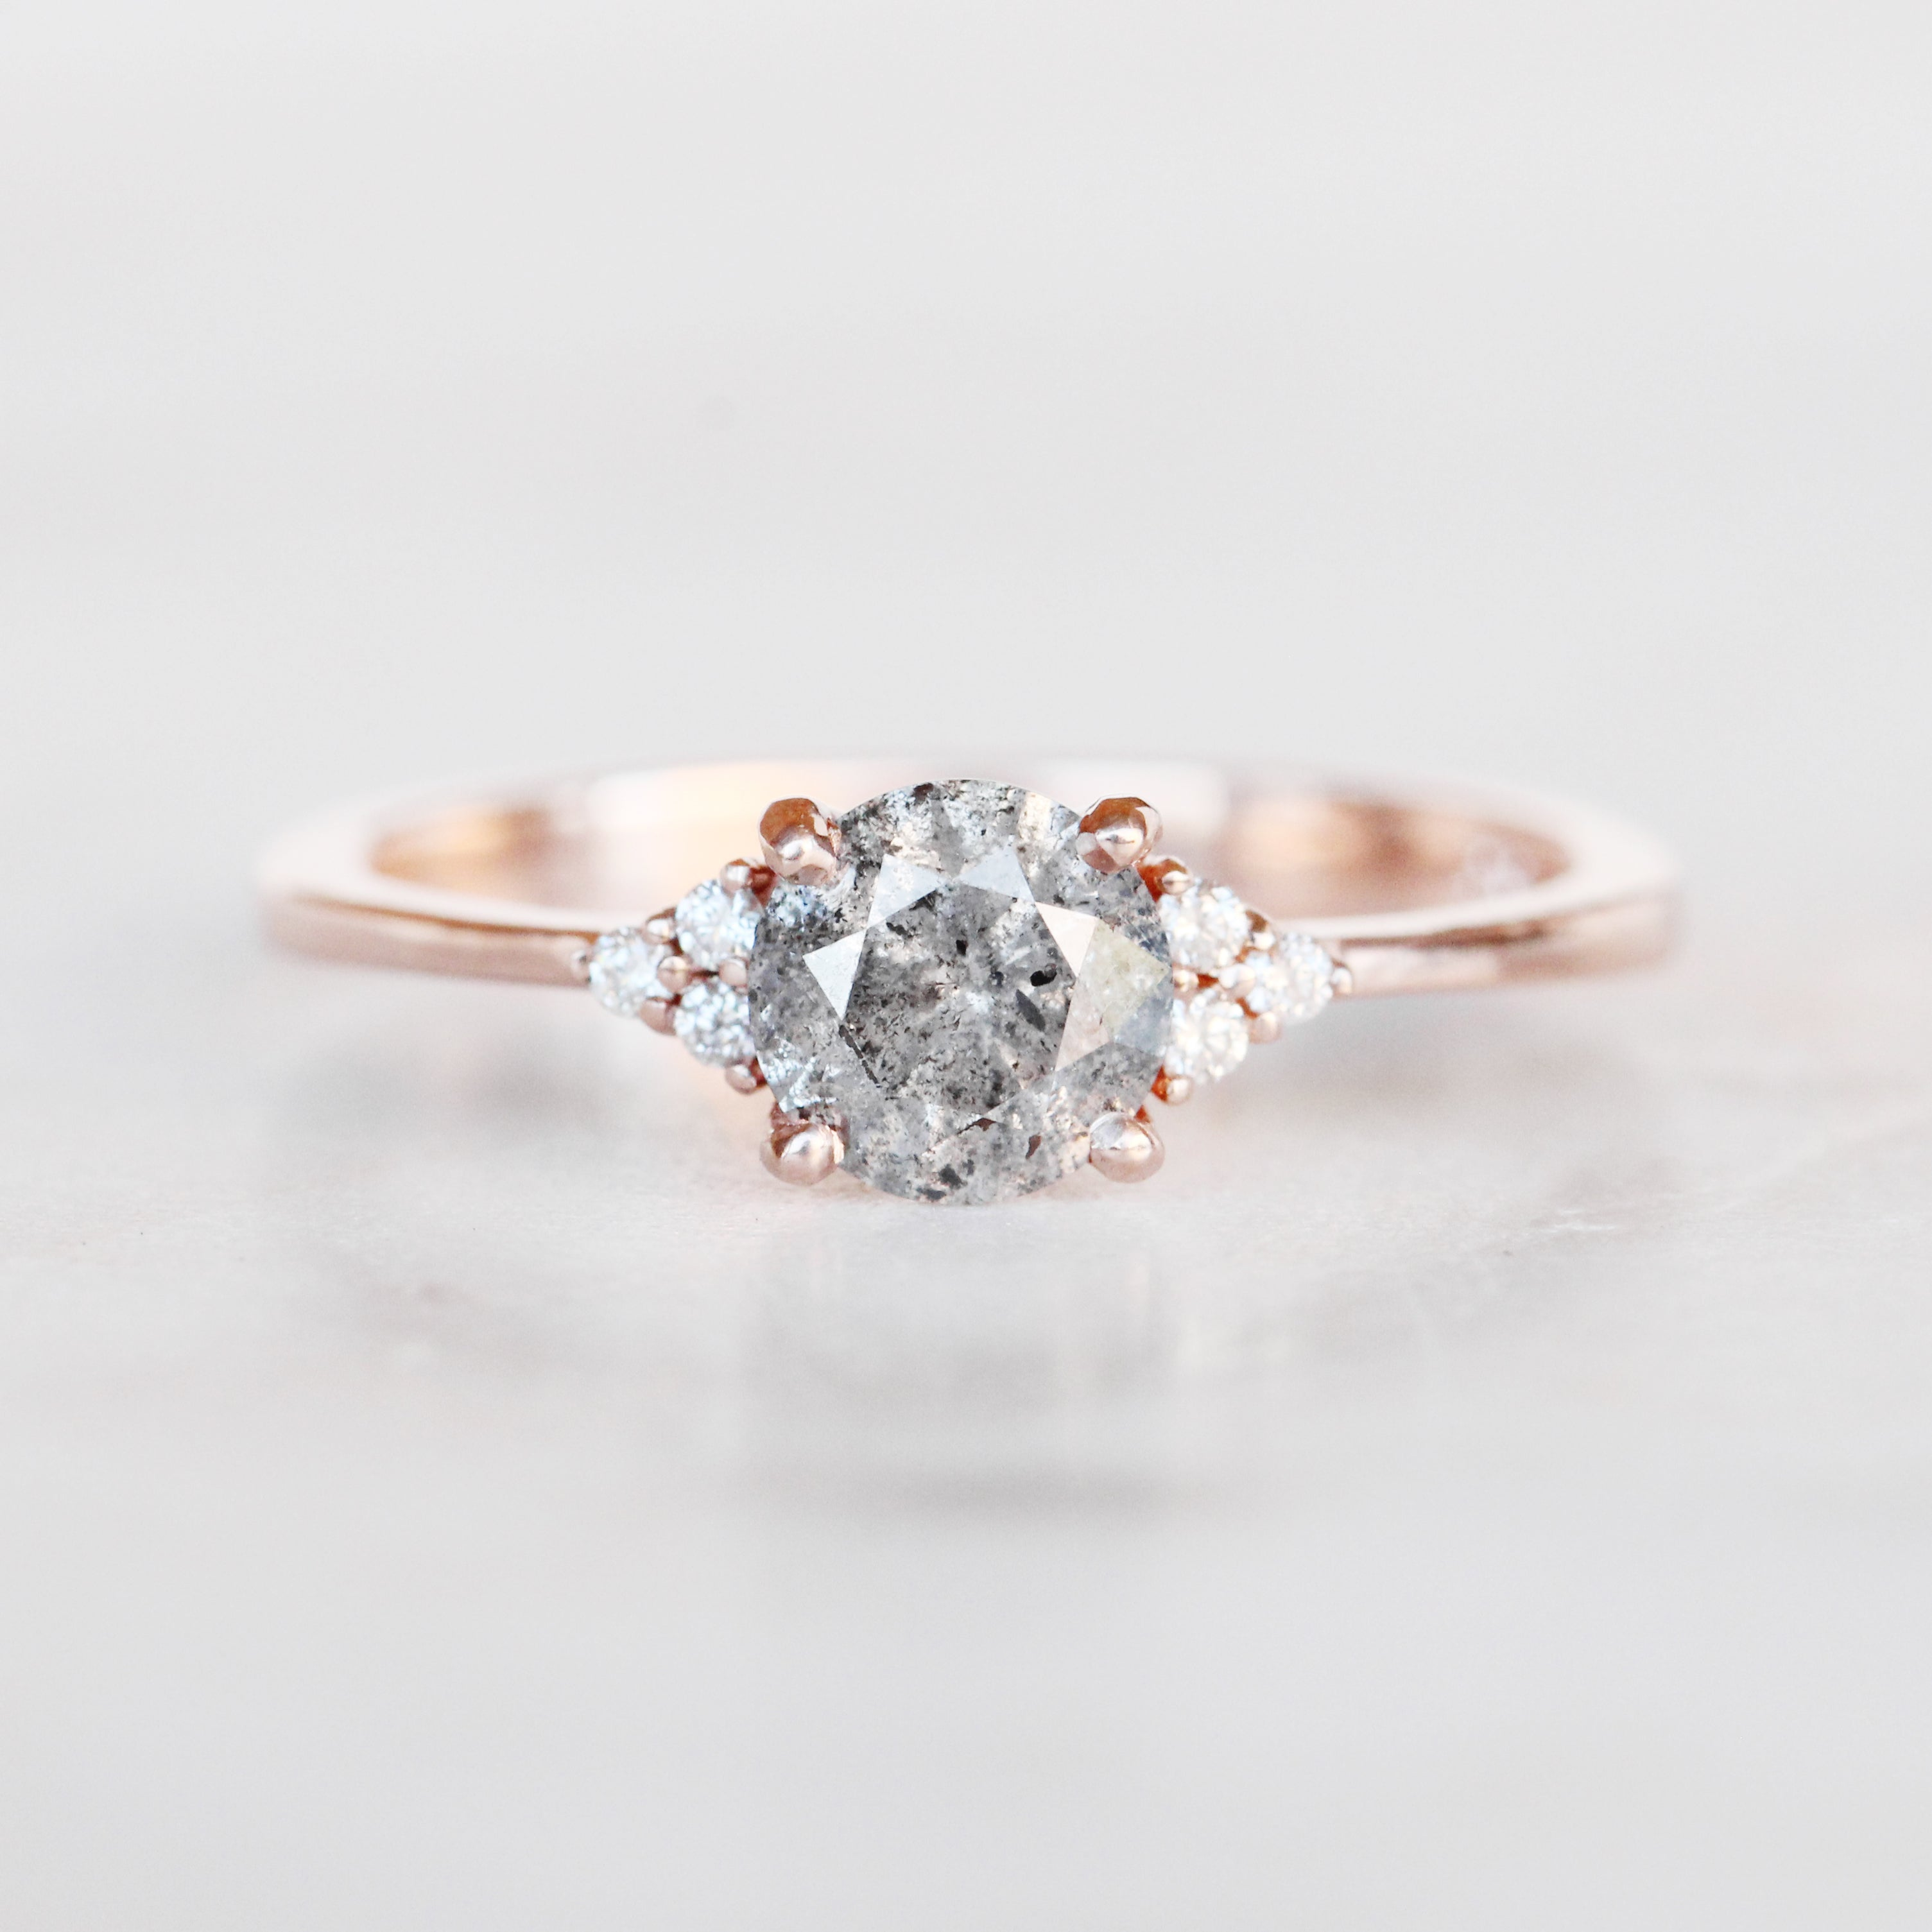 Imogene Ring with a .77 Carat Celestial Diamond in 10k Rose Gold - Ready to Size and Ship - Salt & Pepper Celestial Diamond Engagement Rings and Wedding Bands  by Midwinter Co.